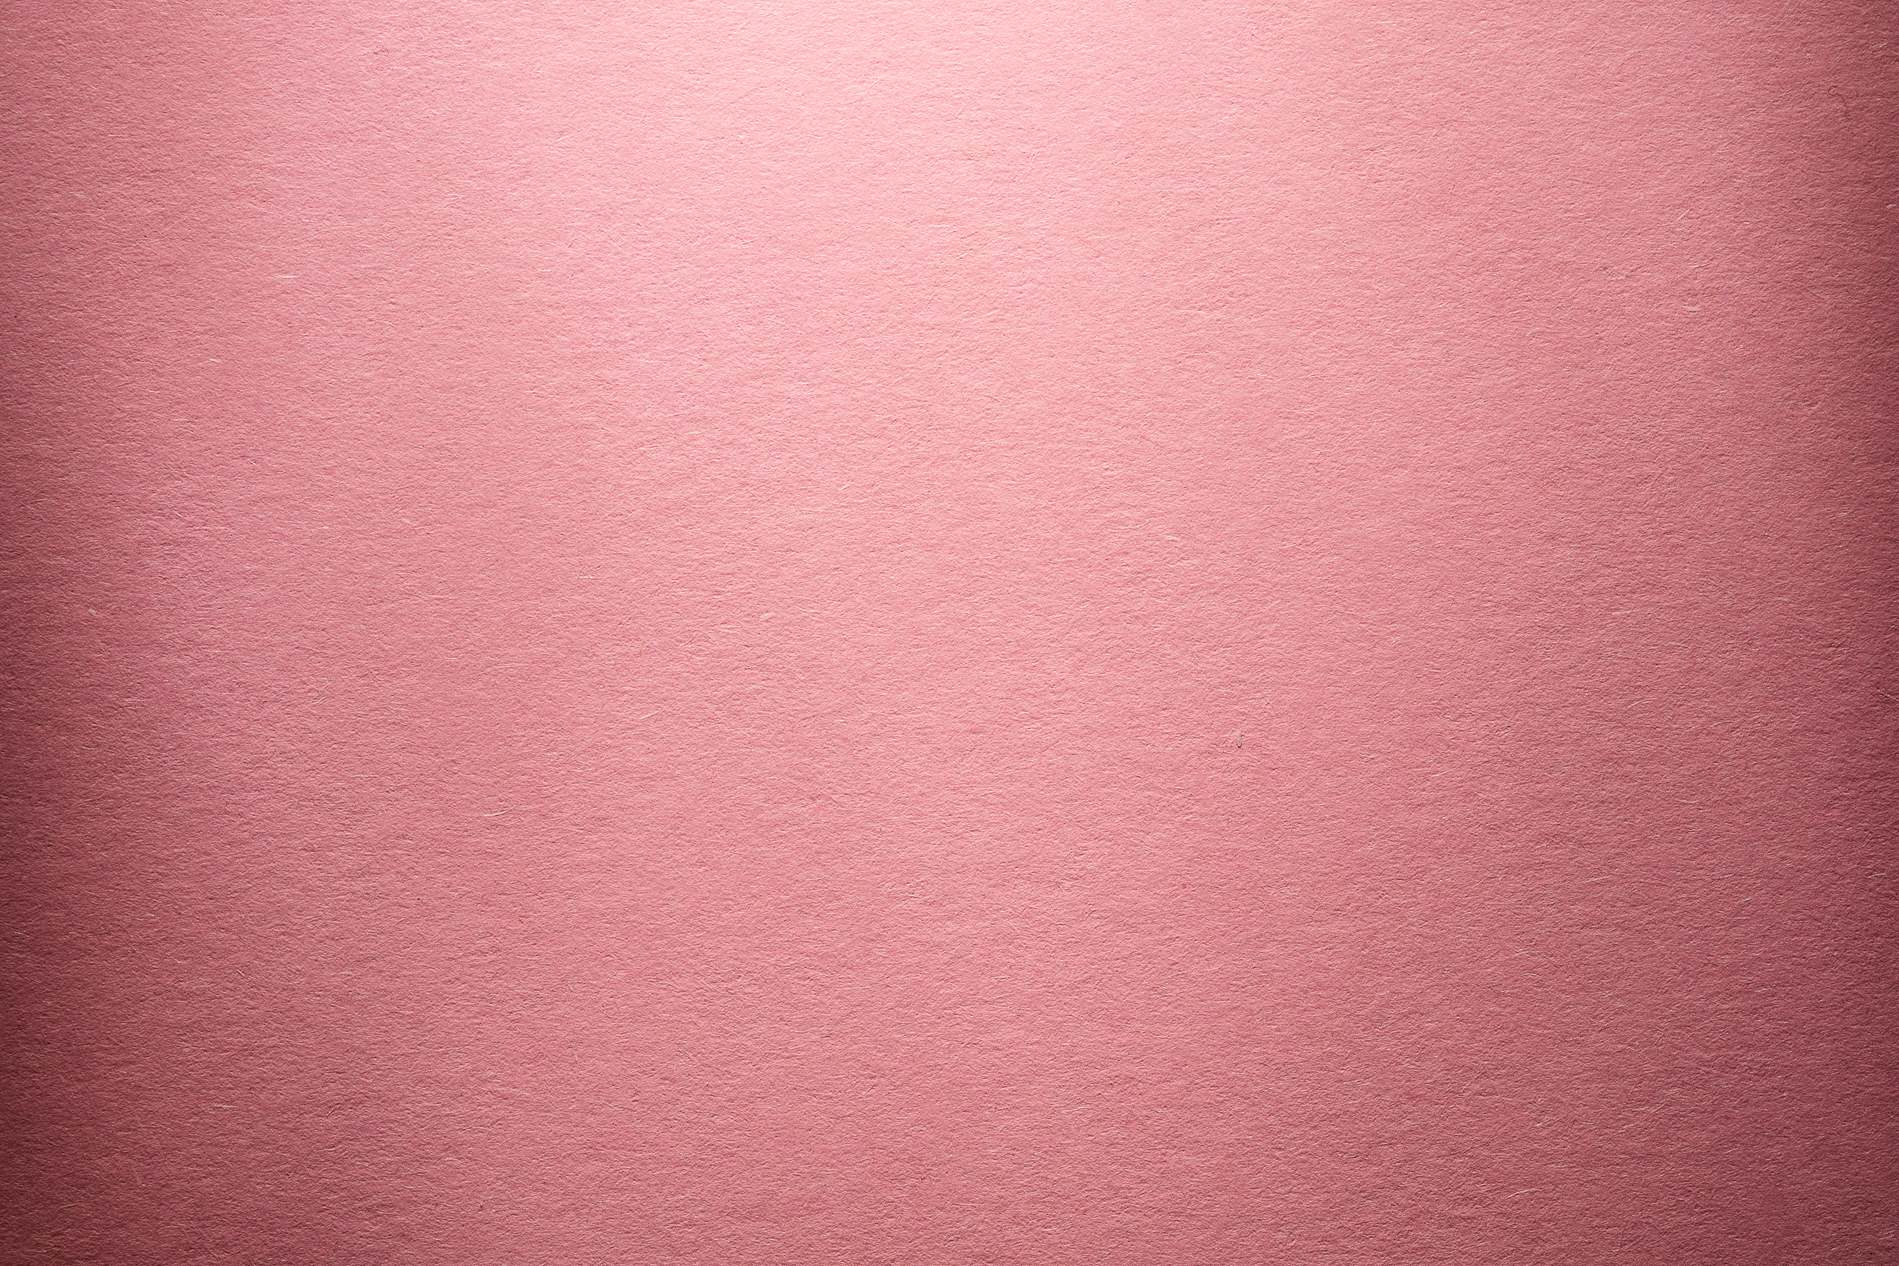 Clean Pink Paper Texture Background Photohdx